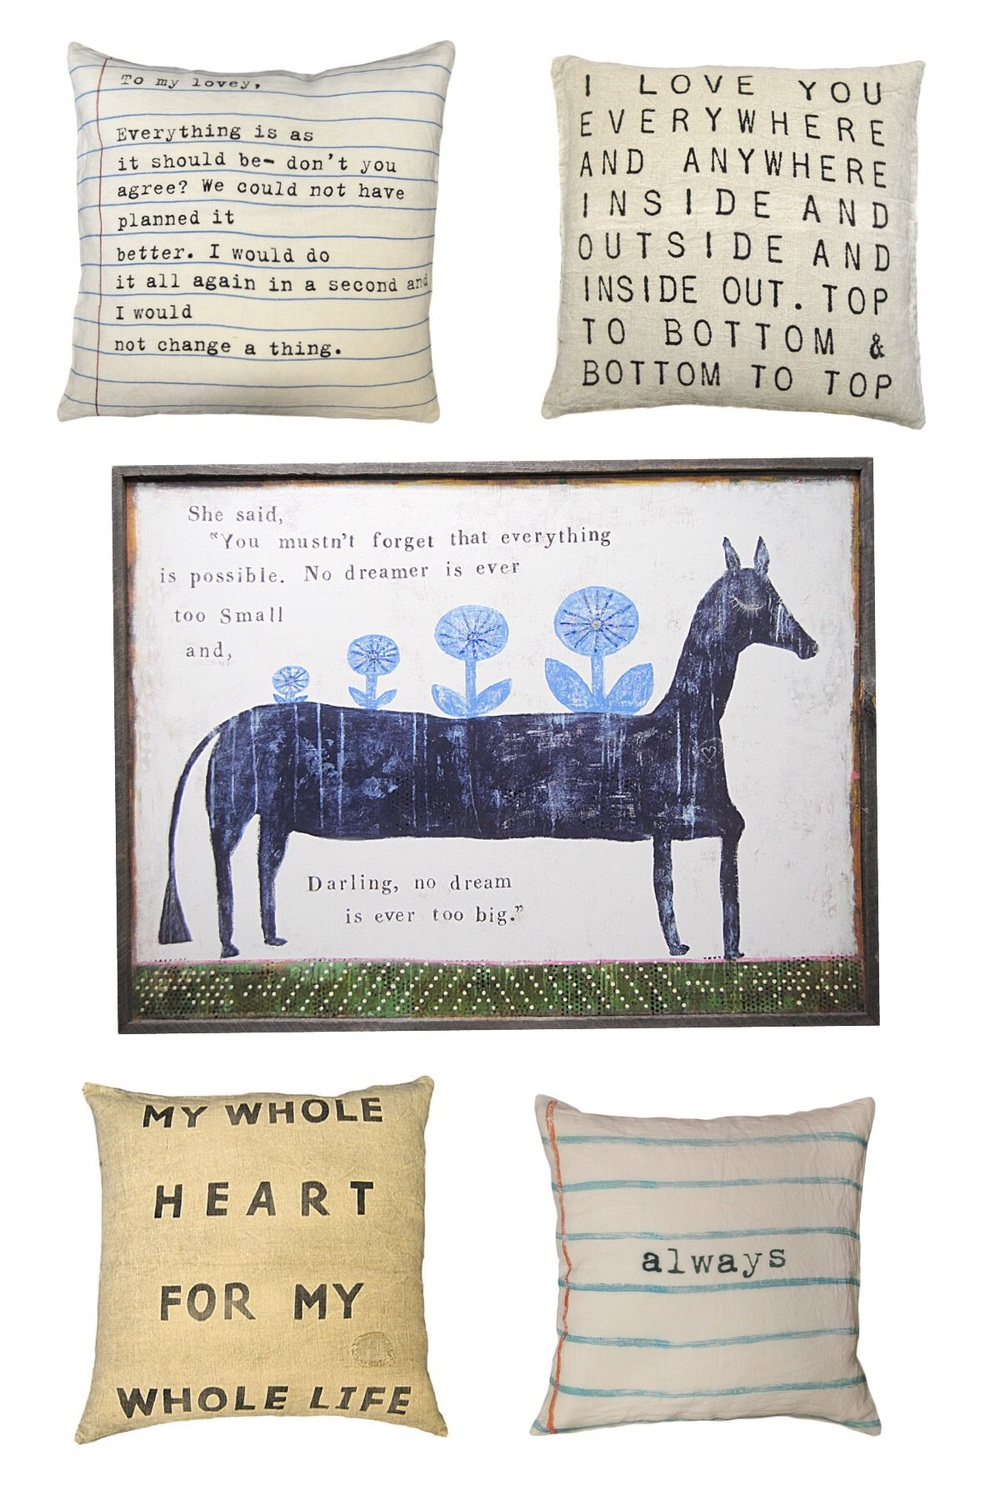 Available through Savvy: Wonderful Folk Art-inspired prints and pillows made from linen...and heart. Book Collection Art Prints (below) - hand framed in reclaimed wood. Each print is available in White, Cream, and Charcoal.  2' x 3'  and 3' x 4'.